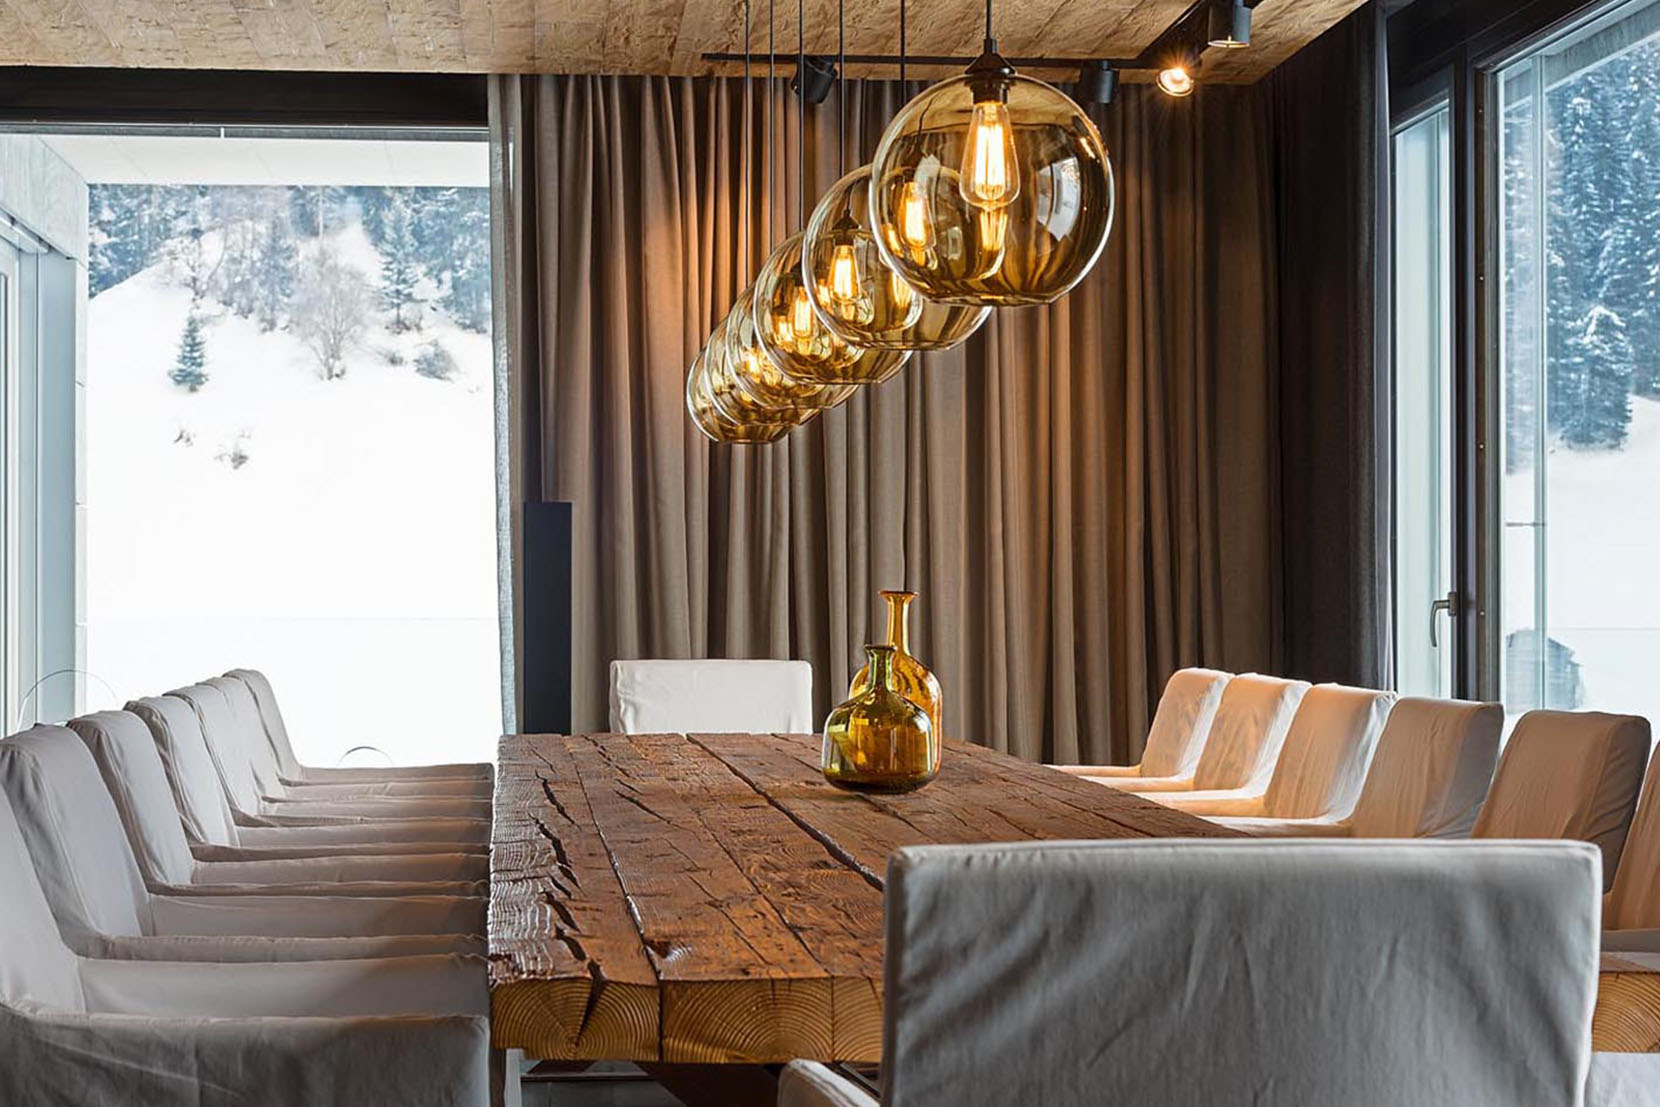 Modern-Dining-Room-Lighting-Pages-Amber-Solitaires-Apartment.jpg